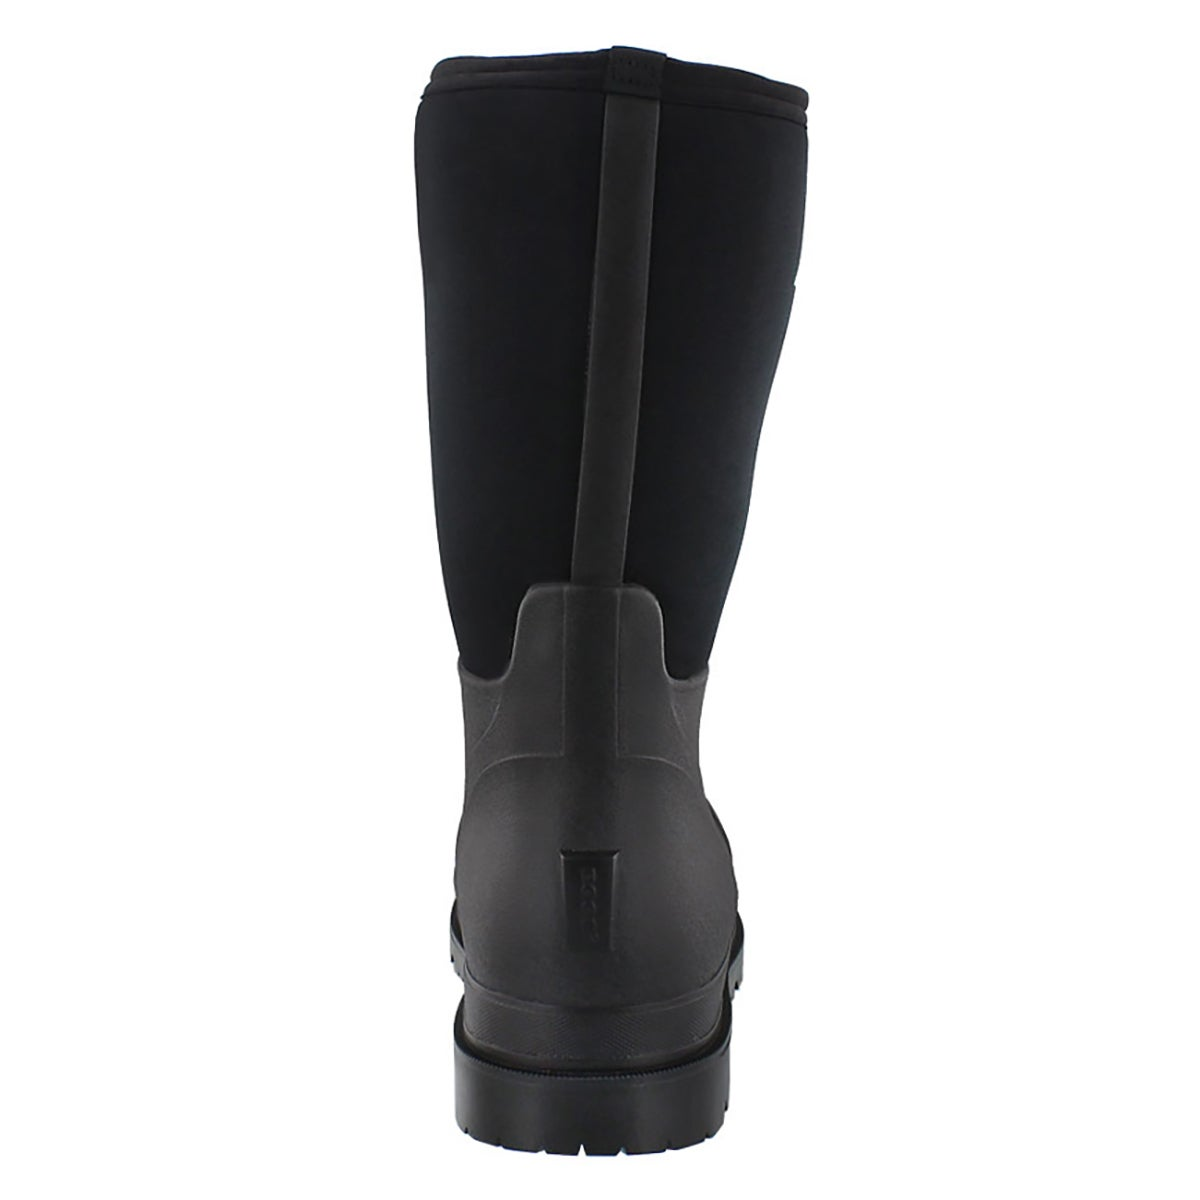 Mns Stockman CT CSA wtpf blk boot